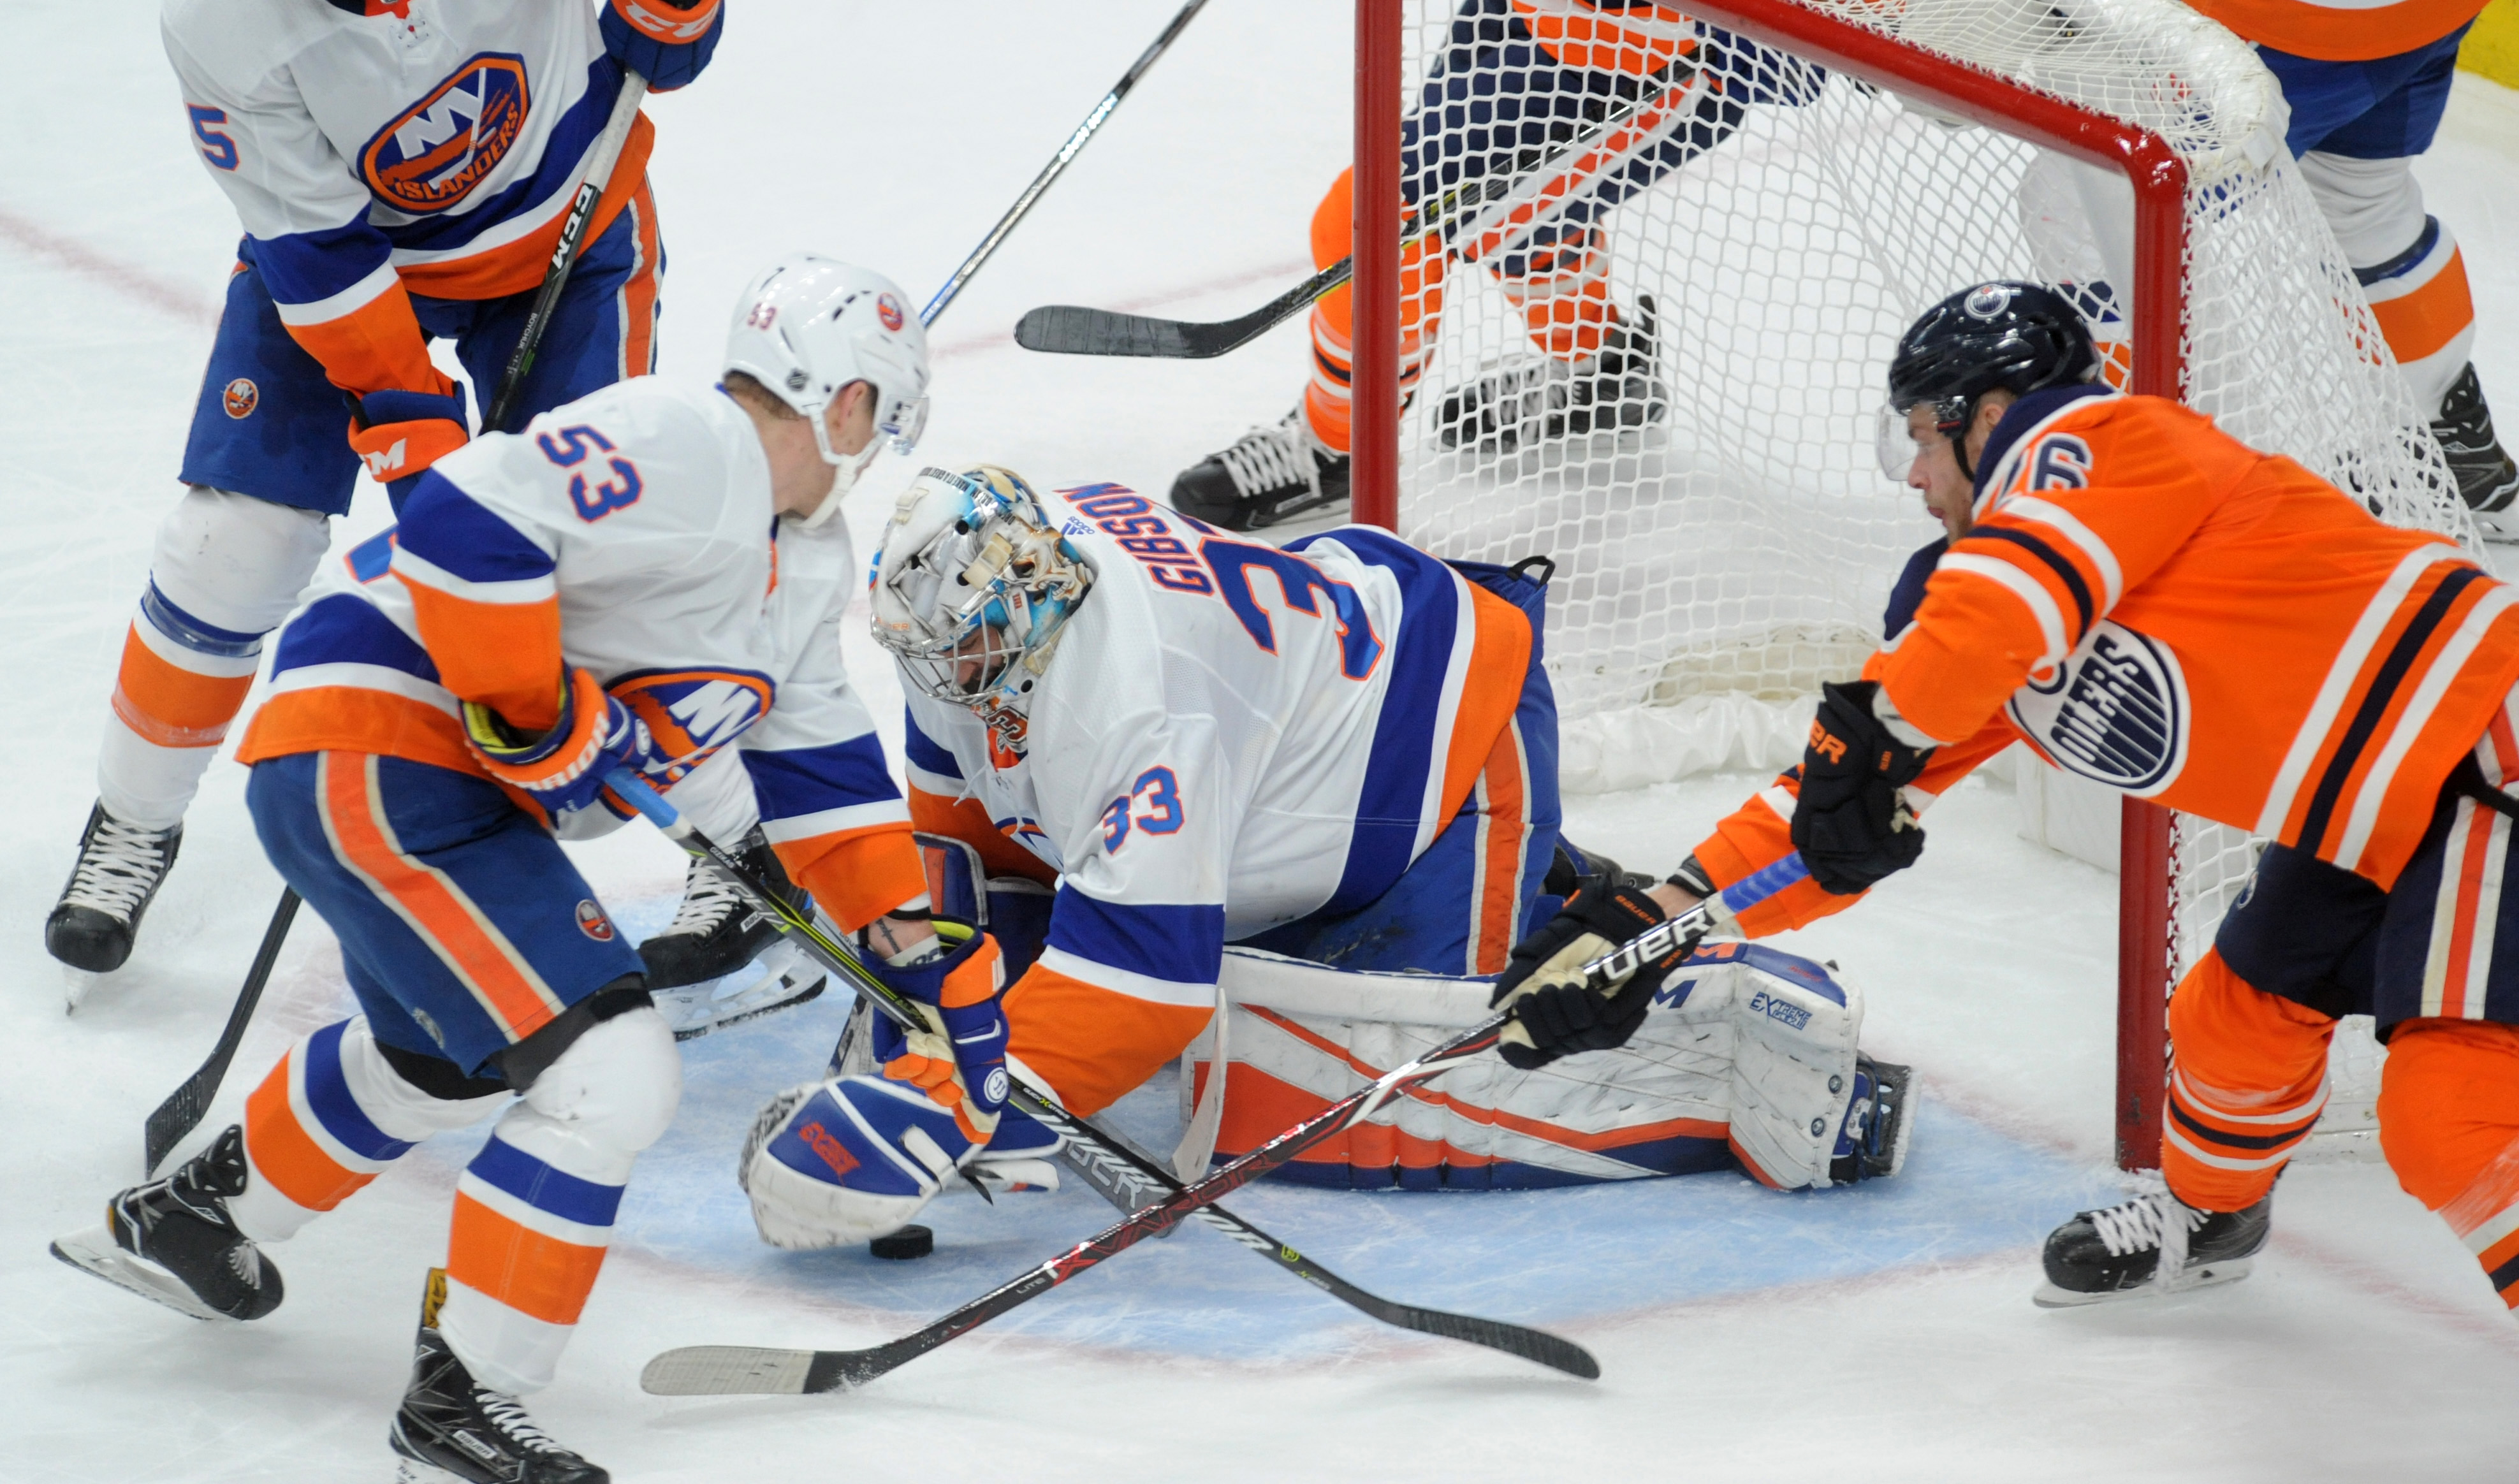 Mar 8, 2018; Edmonton, Alberta, CAN; New York Islanders goalie Christopher Gibson (33) battles for the puck with Islanders center Casey Cizikas (53) and Islanders defenceman Johnny Boychuck (55) helps as Edmonton Oilers right winger Iiro Pakarinen (26) skates towards them during the first period at Rogers Place. Mandatory Credit: Walter Tychnowicz-USA TODAY Sports